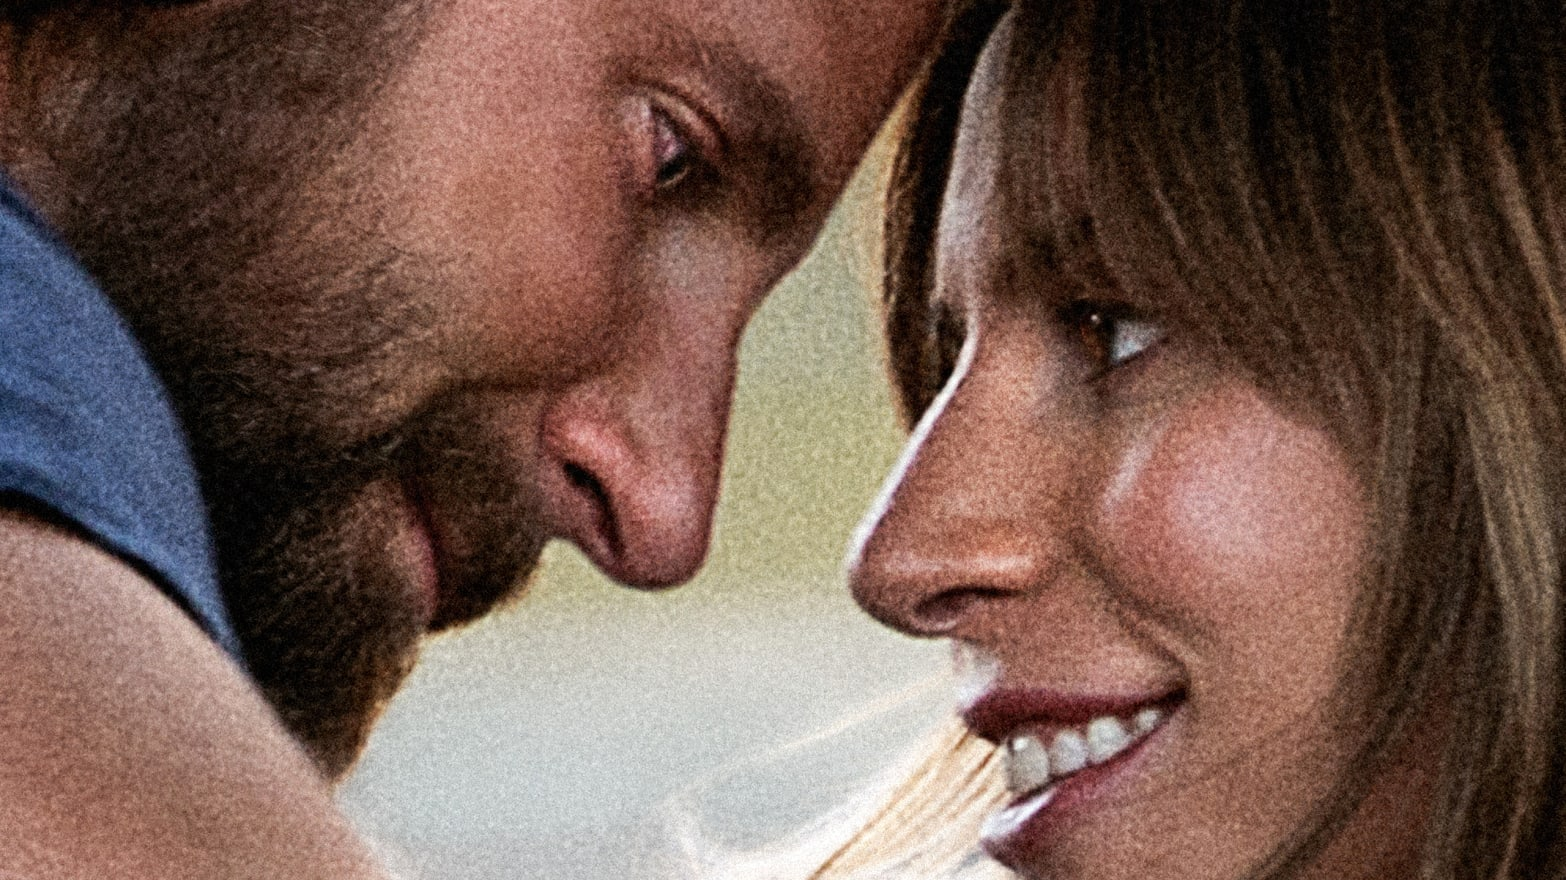 Bradley Cooper's Thing for Lady Gaga's Nose in 'A Star Is